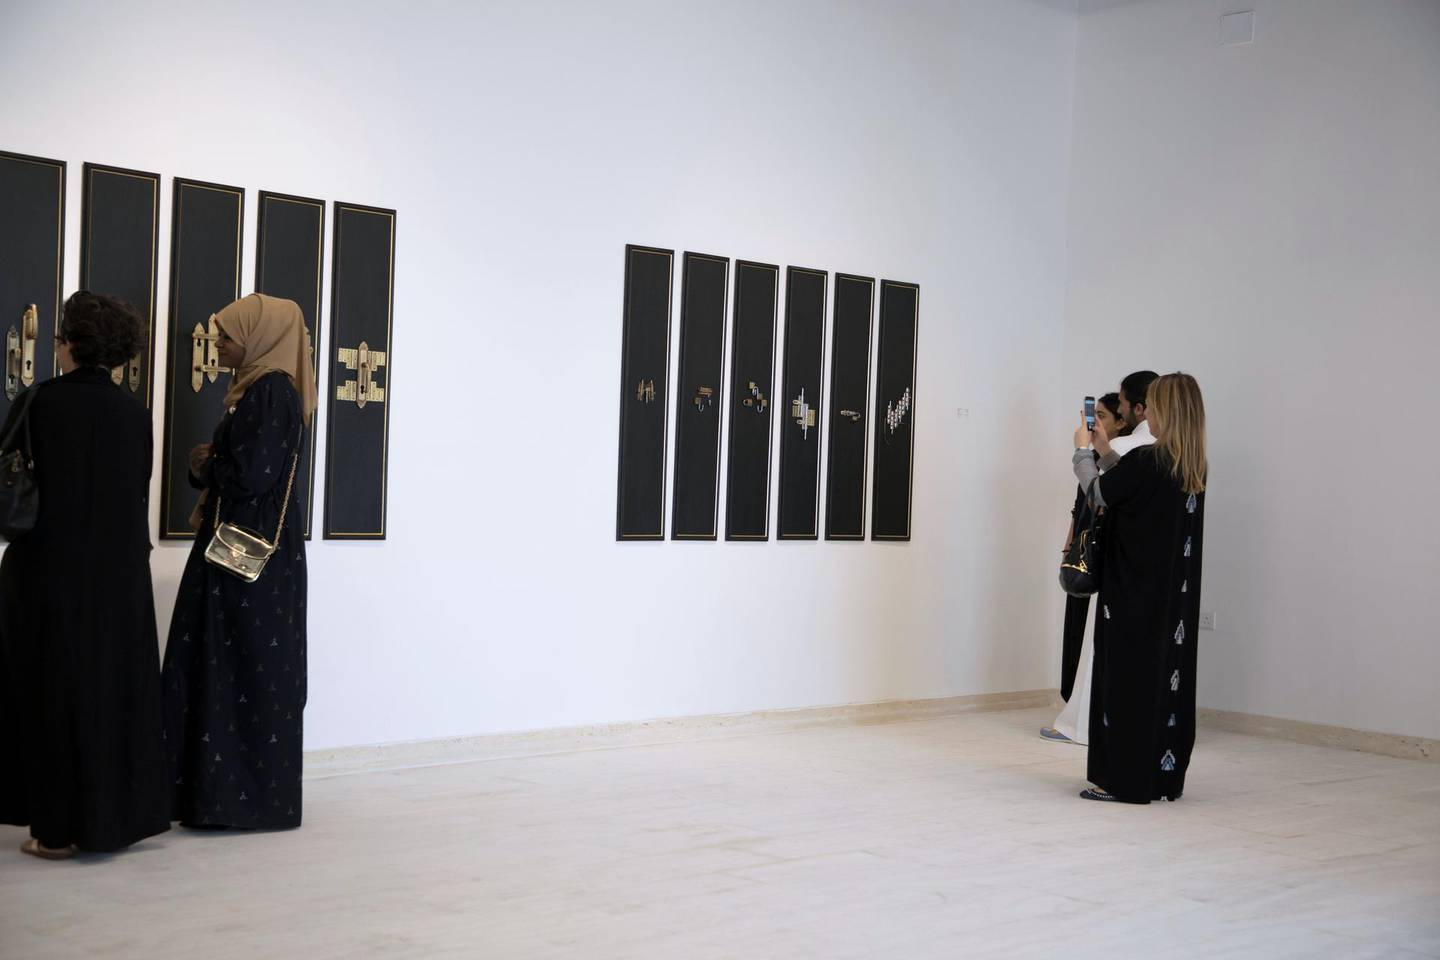 A woman takes a picture of an art work at Makan gallery in Jeddah.